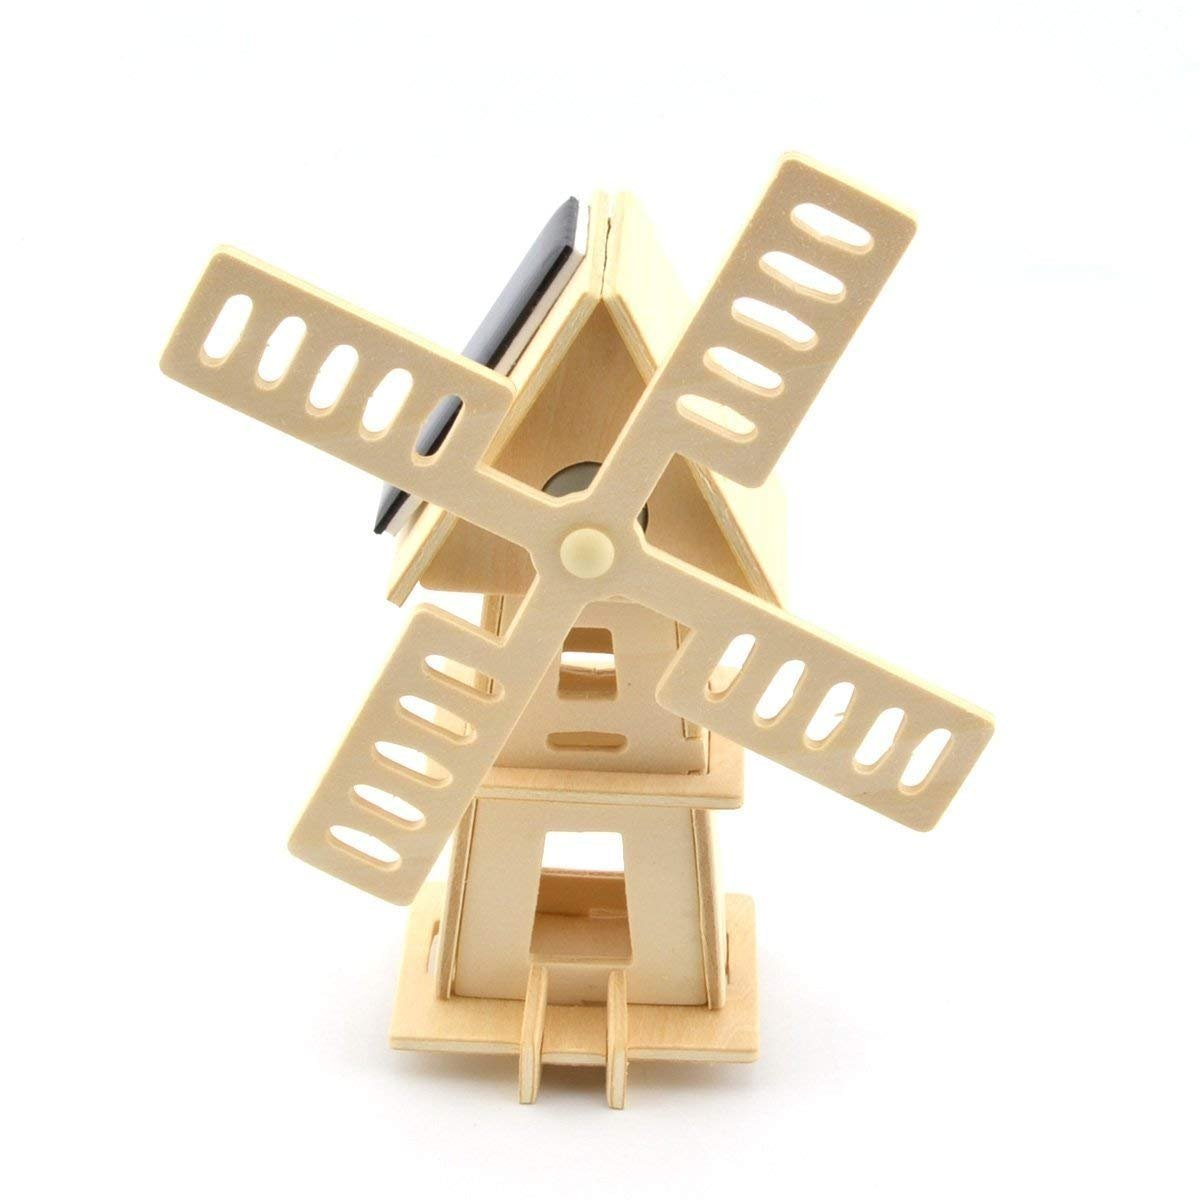 Original Hobby Wood Craft 3D Puzzle Solar Powered Windmill